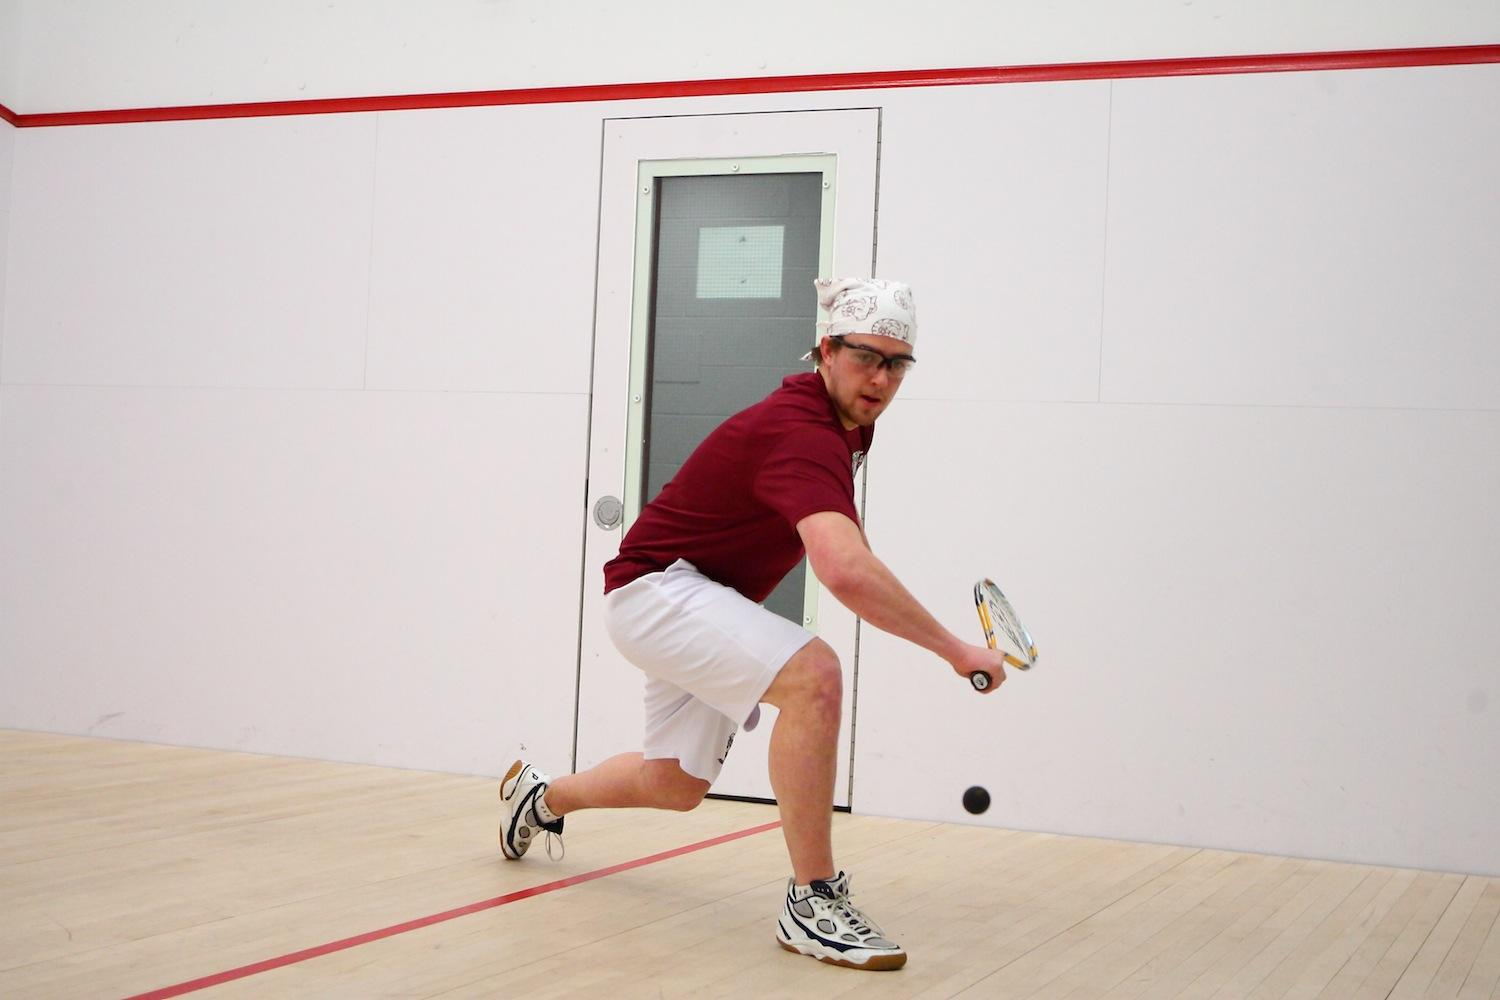 Led By Experience, Squash Team Looks to the Future